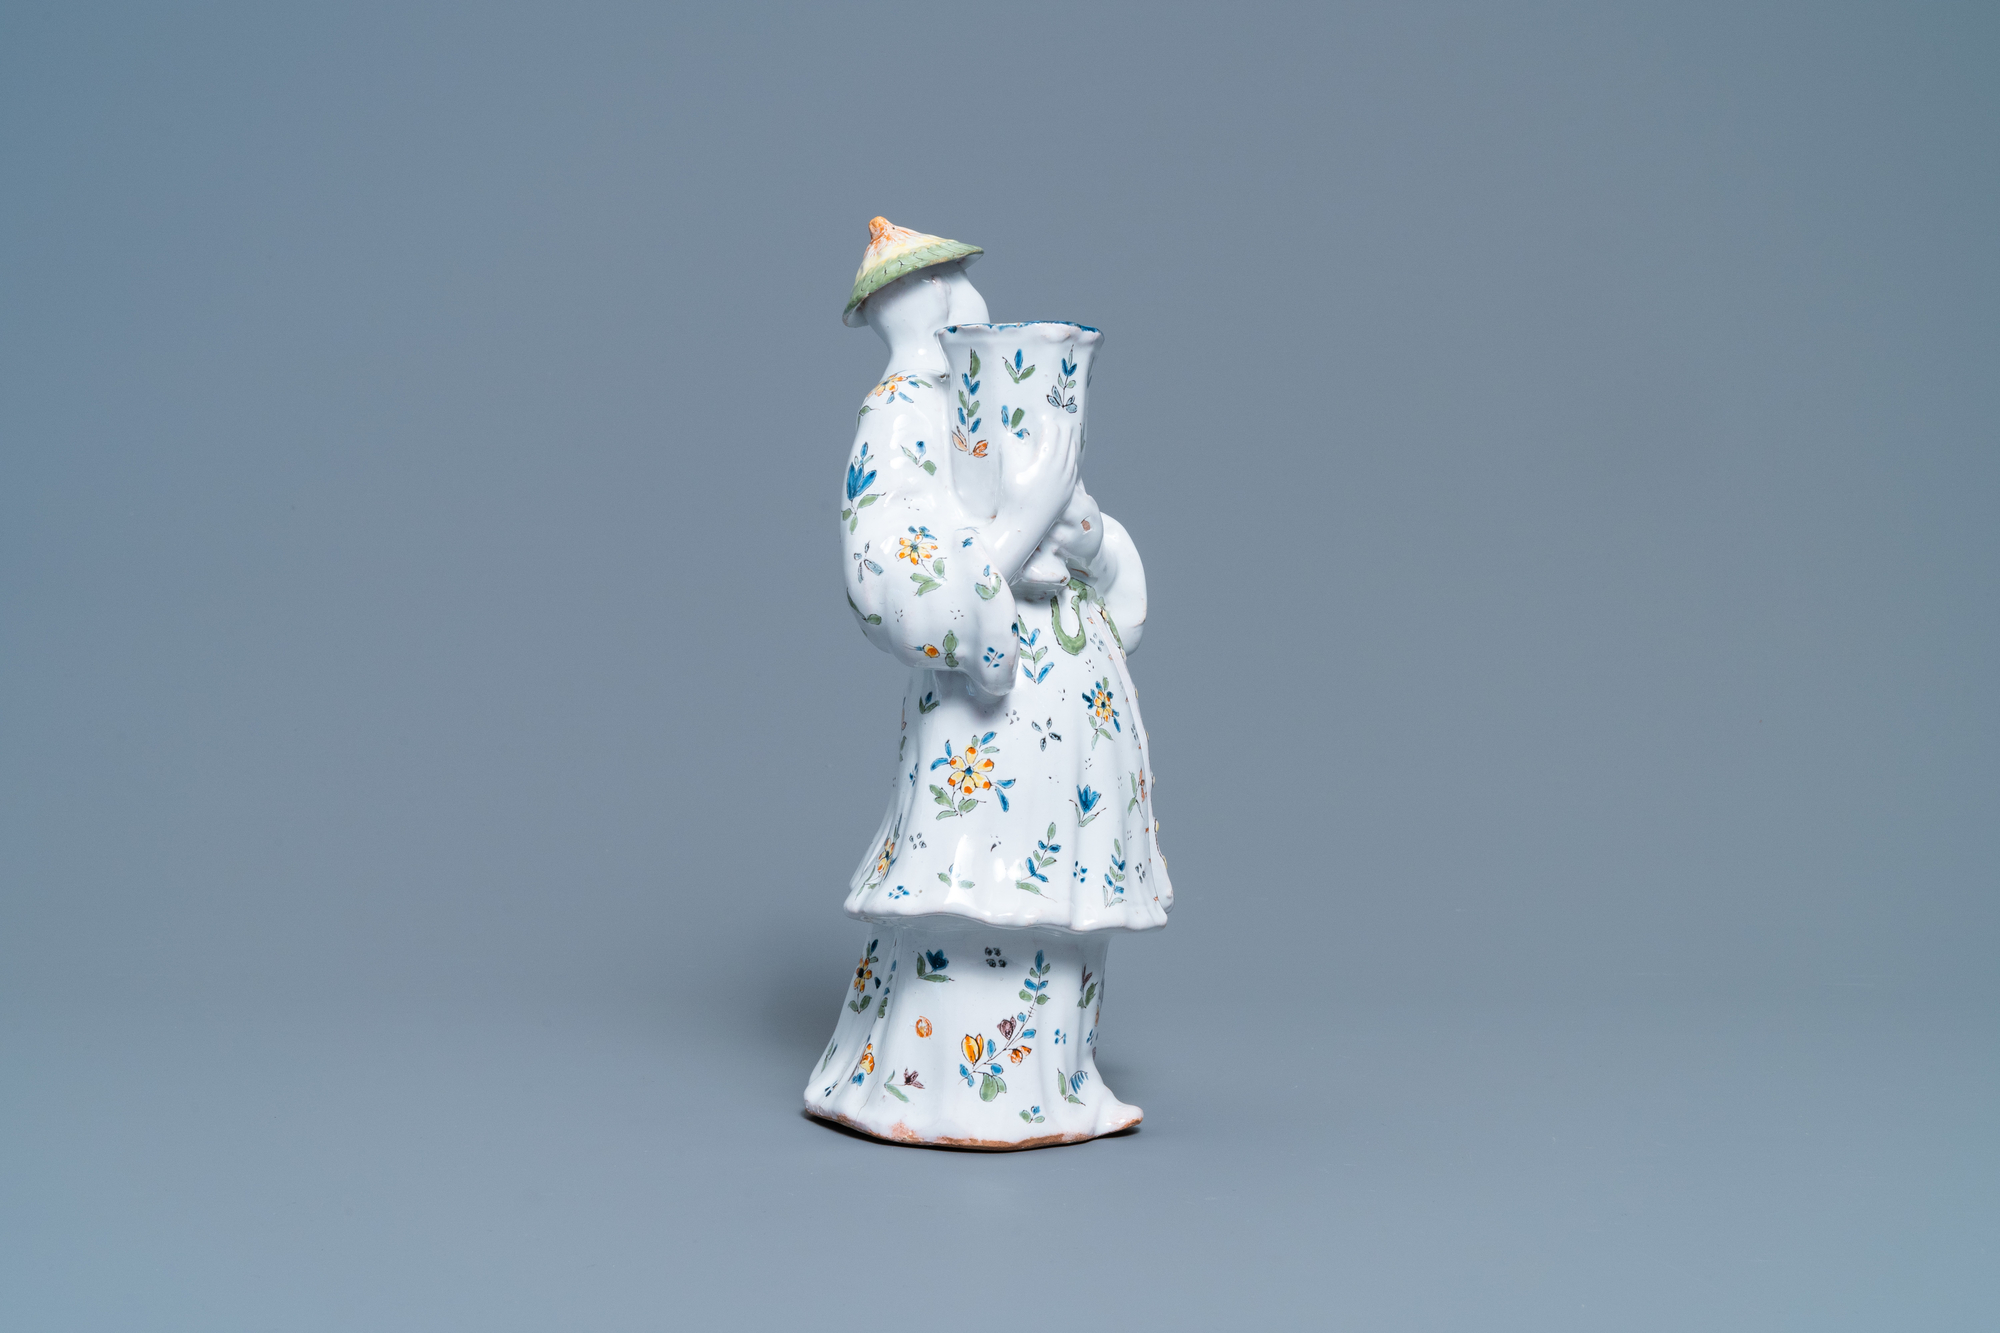 A polychrome French faience candle holder in the shape of a Chinaman, Lille, 18th C. - Image 3 of 7